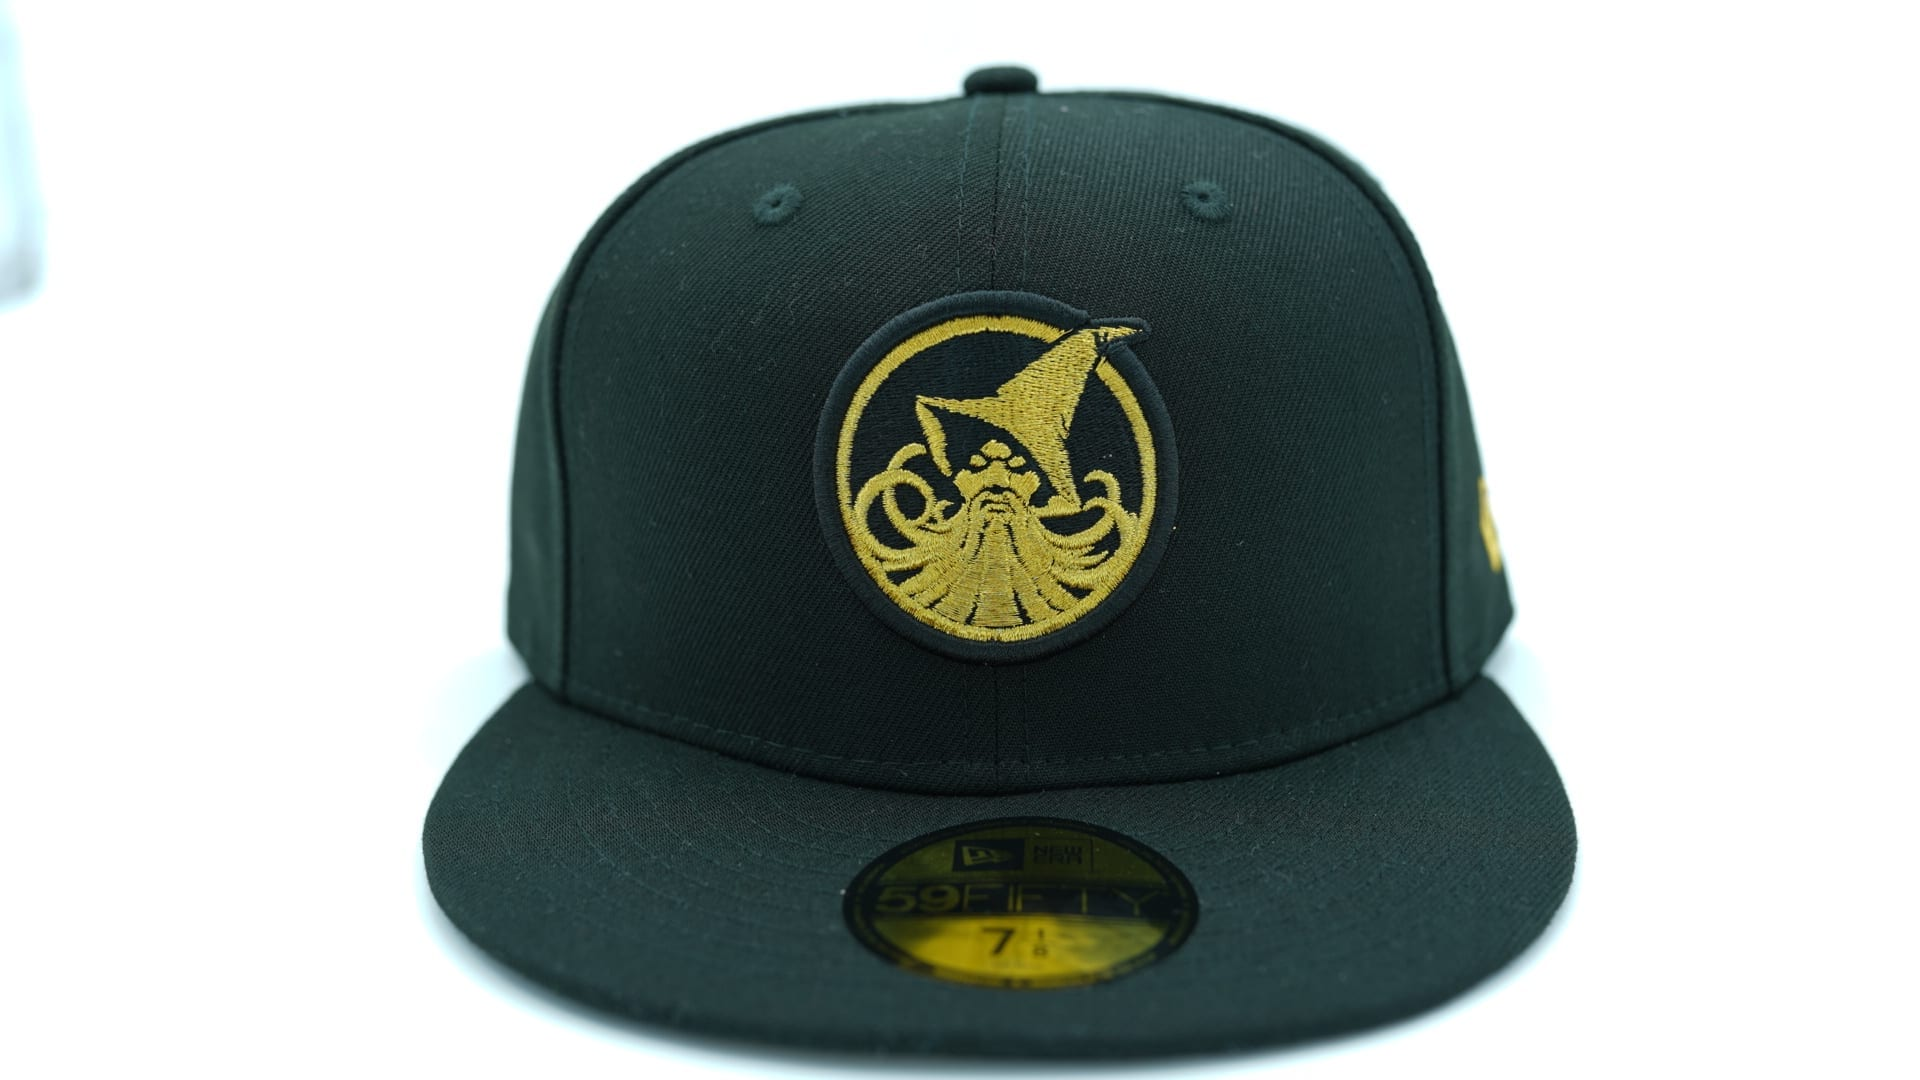 Custom Wheat Suede Cross Bats 59Fifty Fitted Cap by JUST FITTEDS x NEW ERA